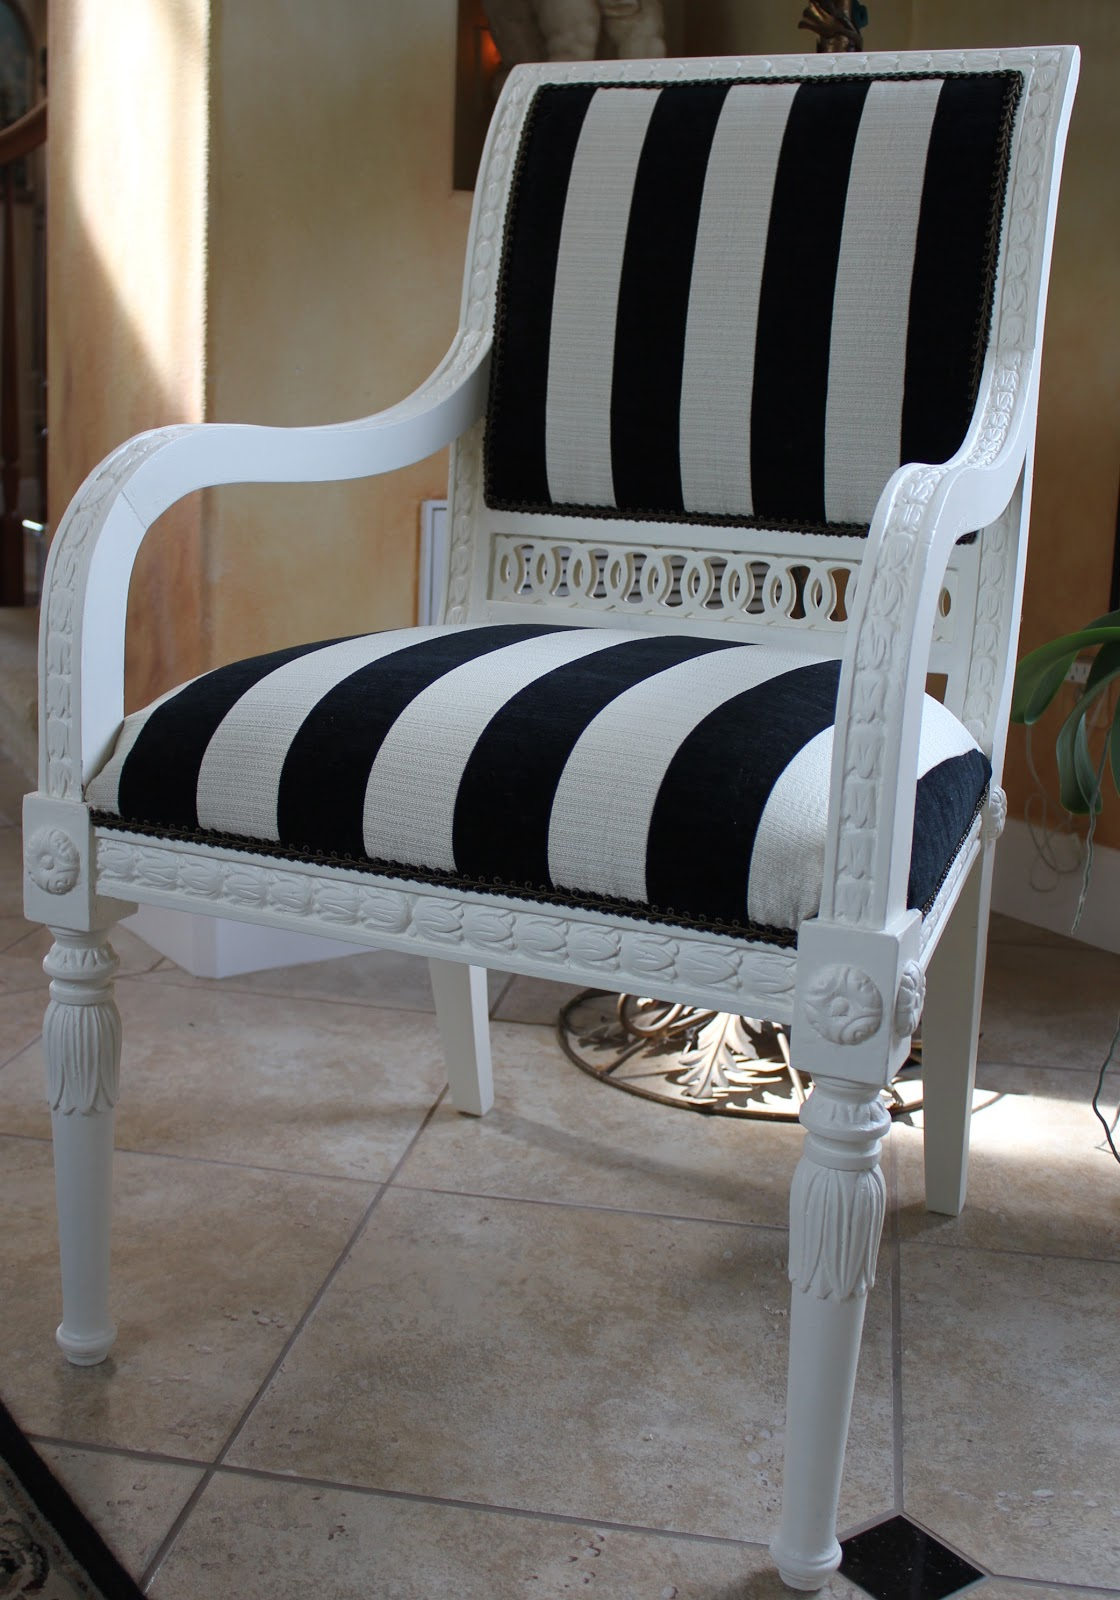 black white striped chair yoga workout horse relics in the works and stripes